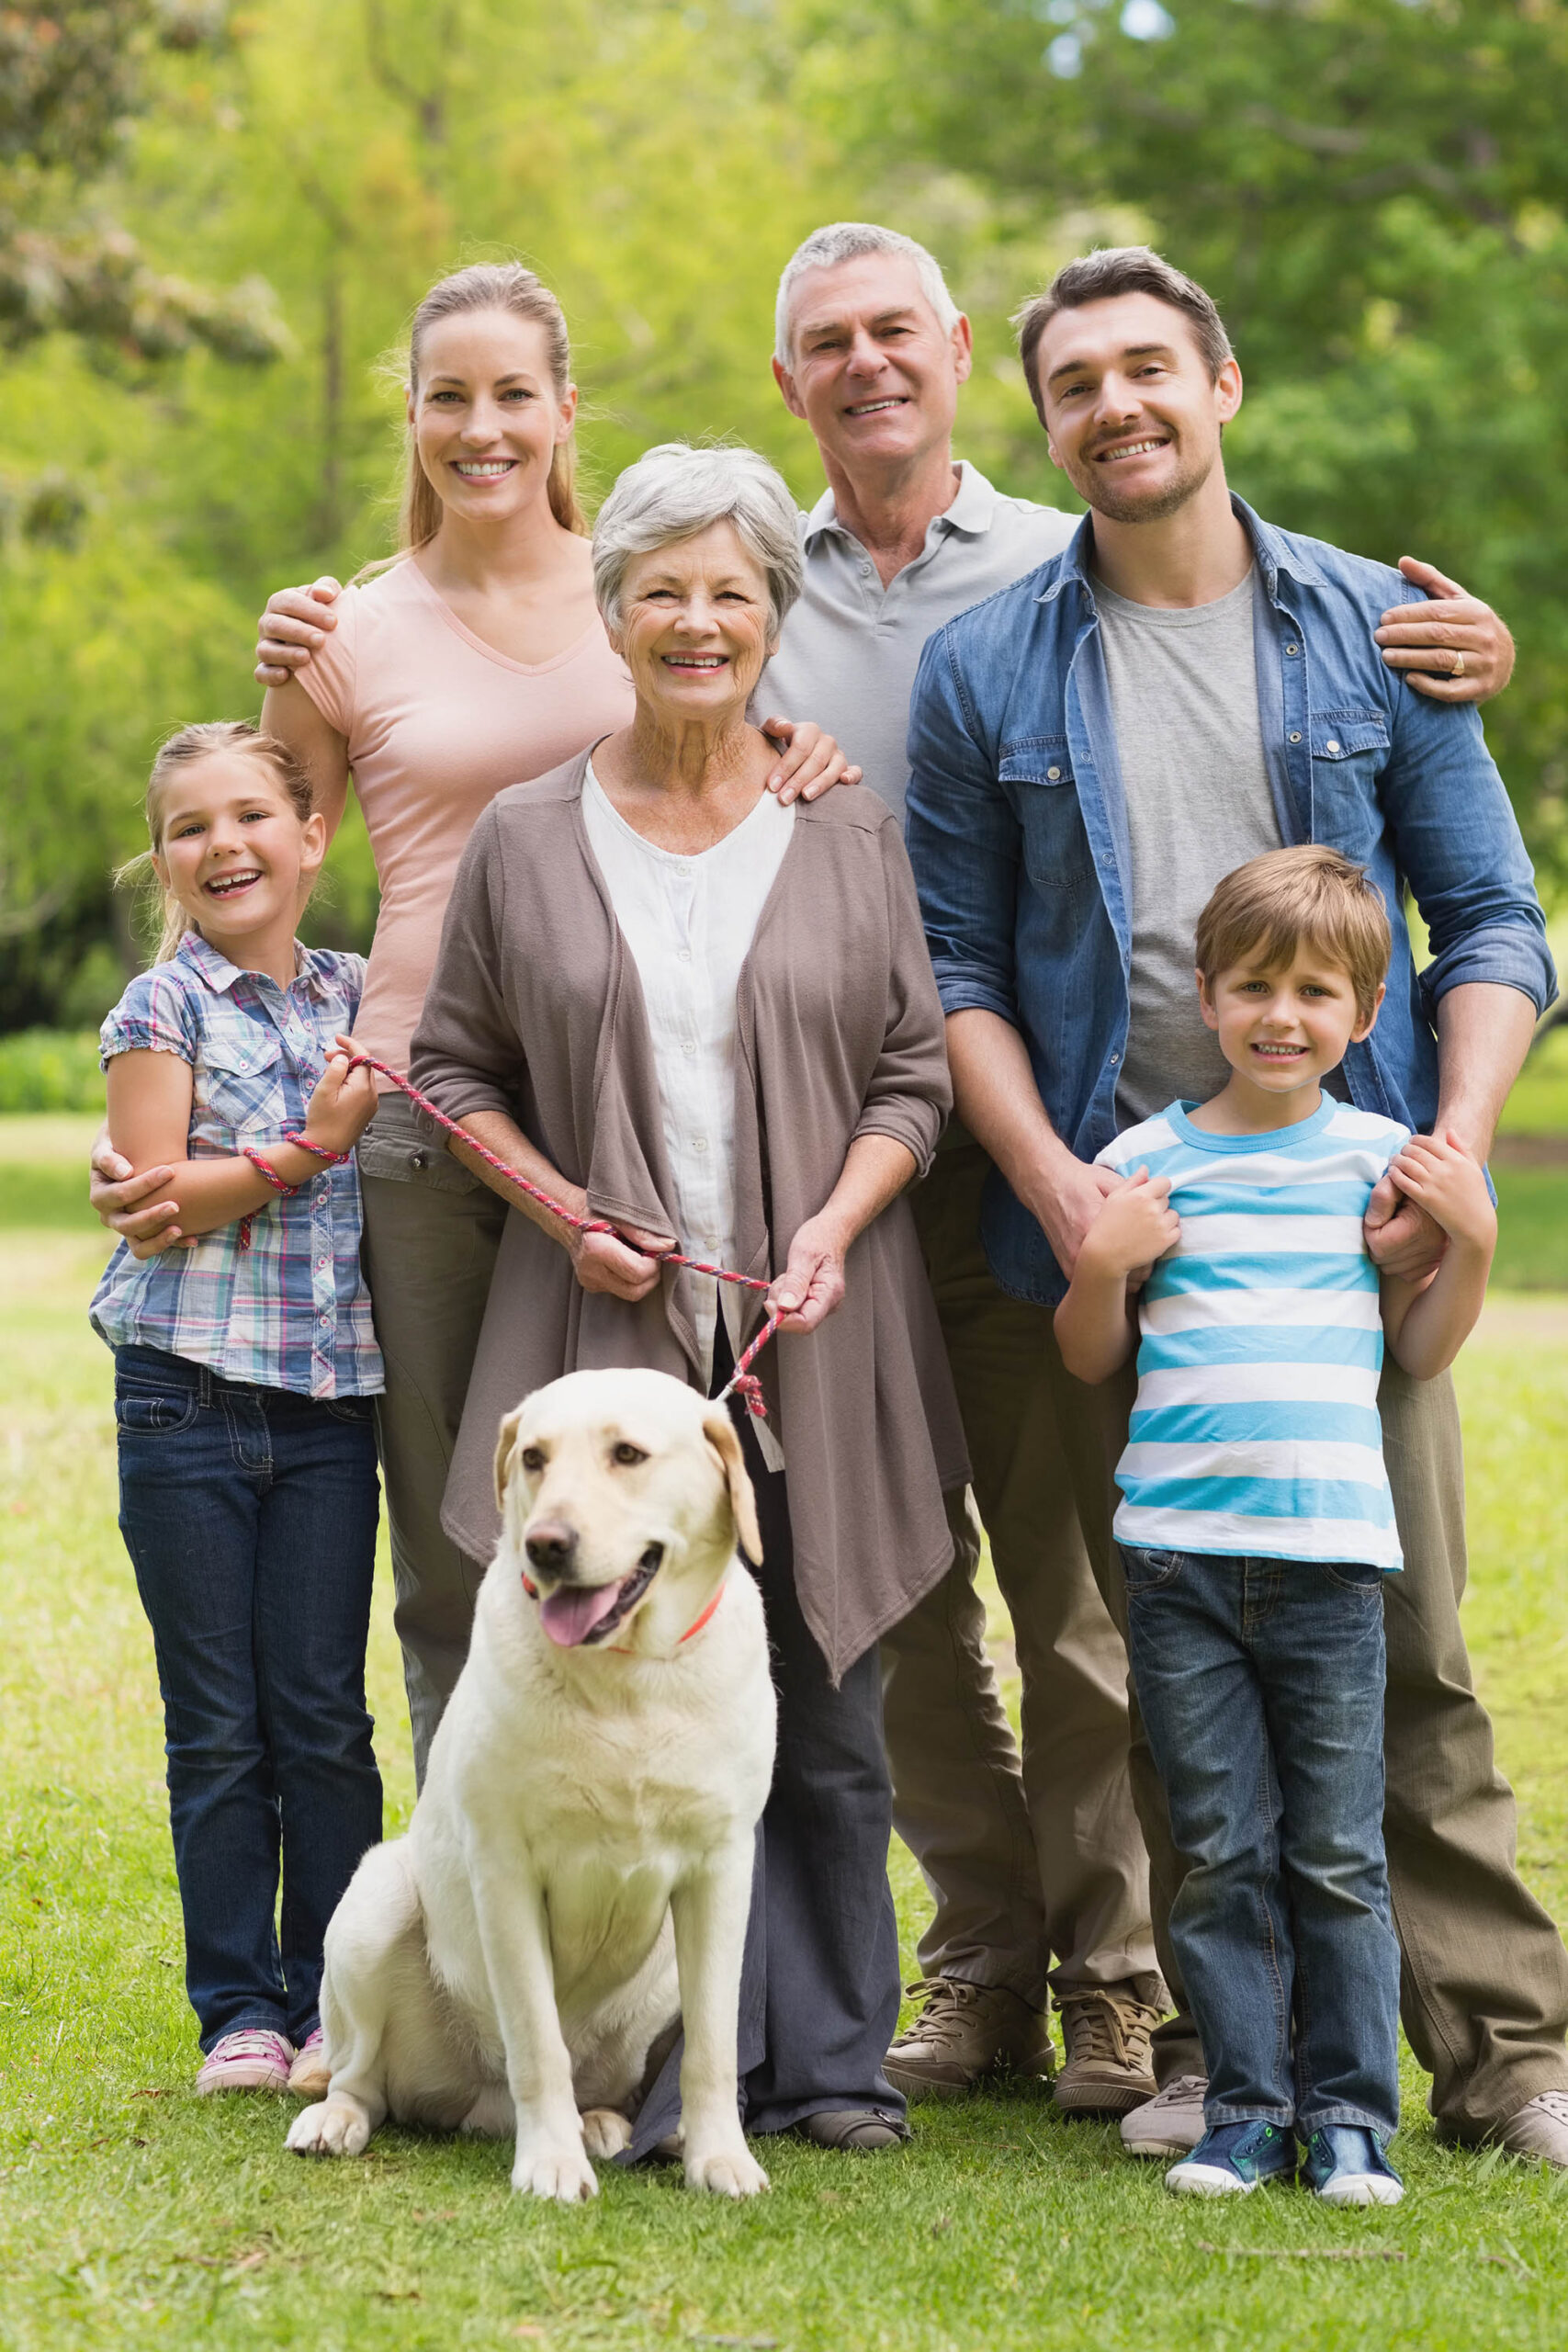 Portrait of an extended family with their pet dog